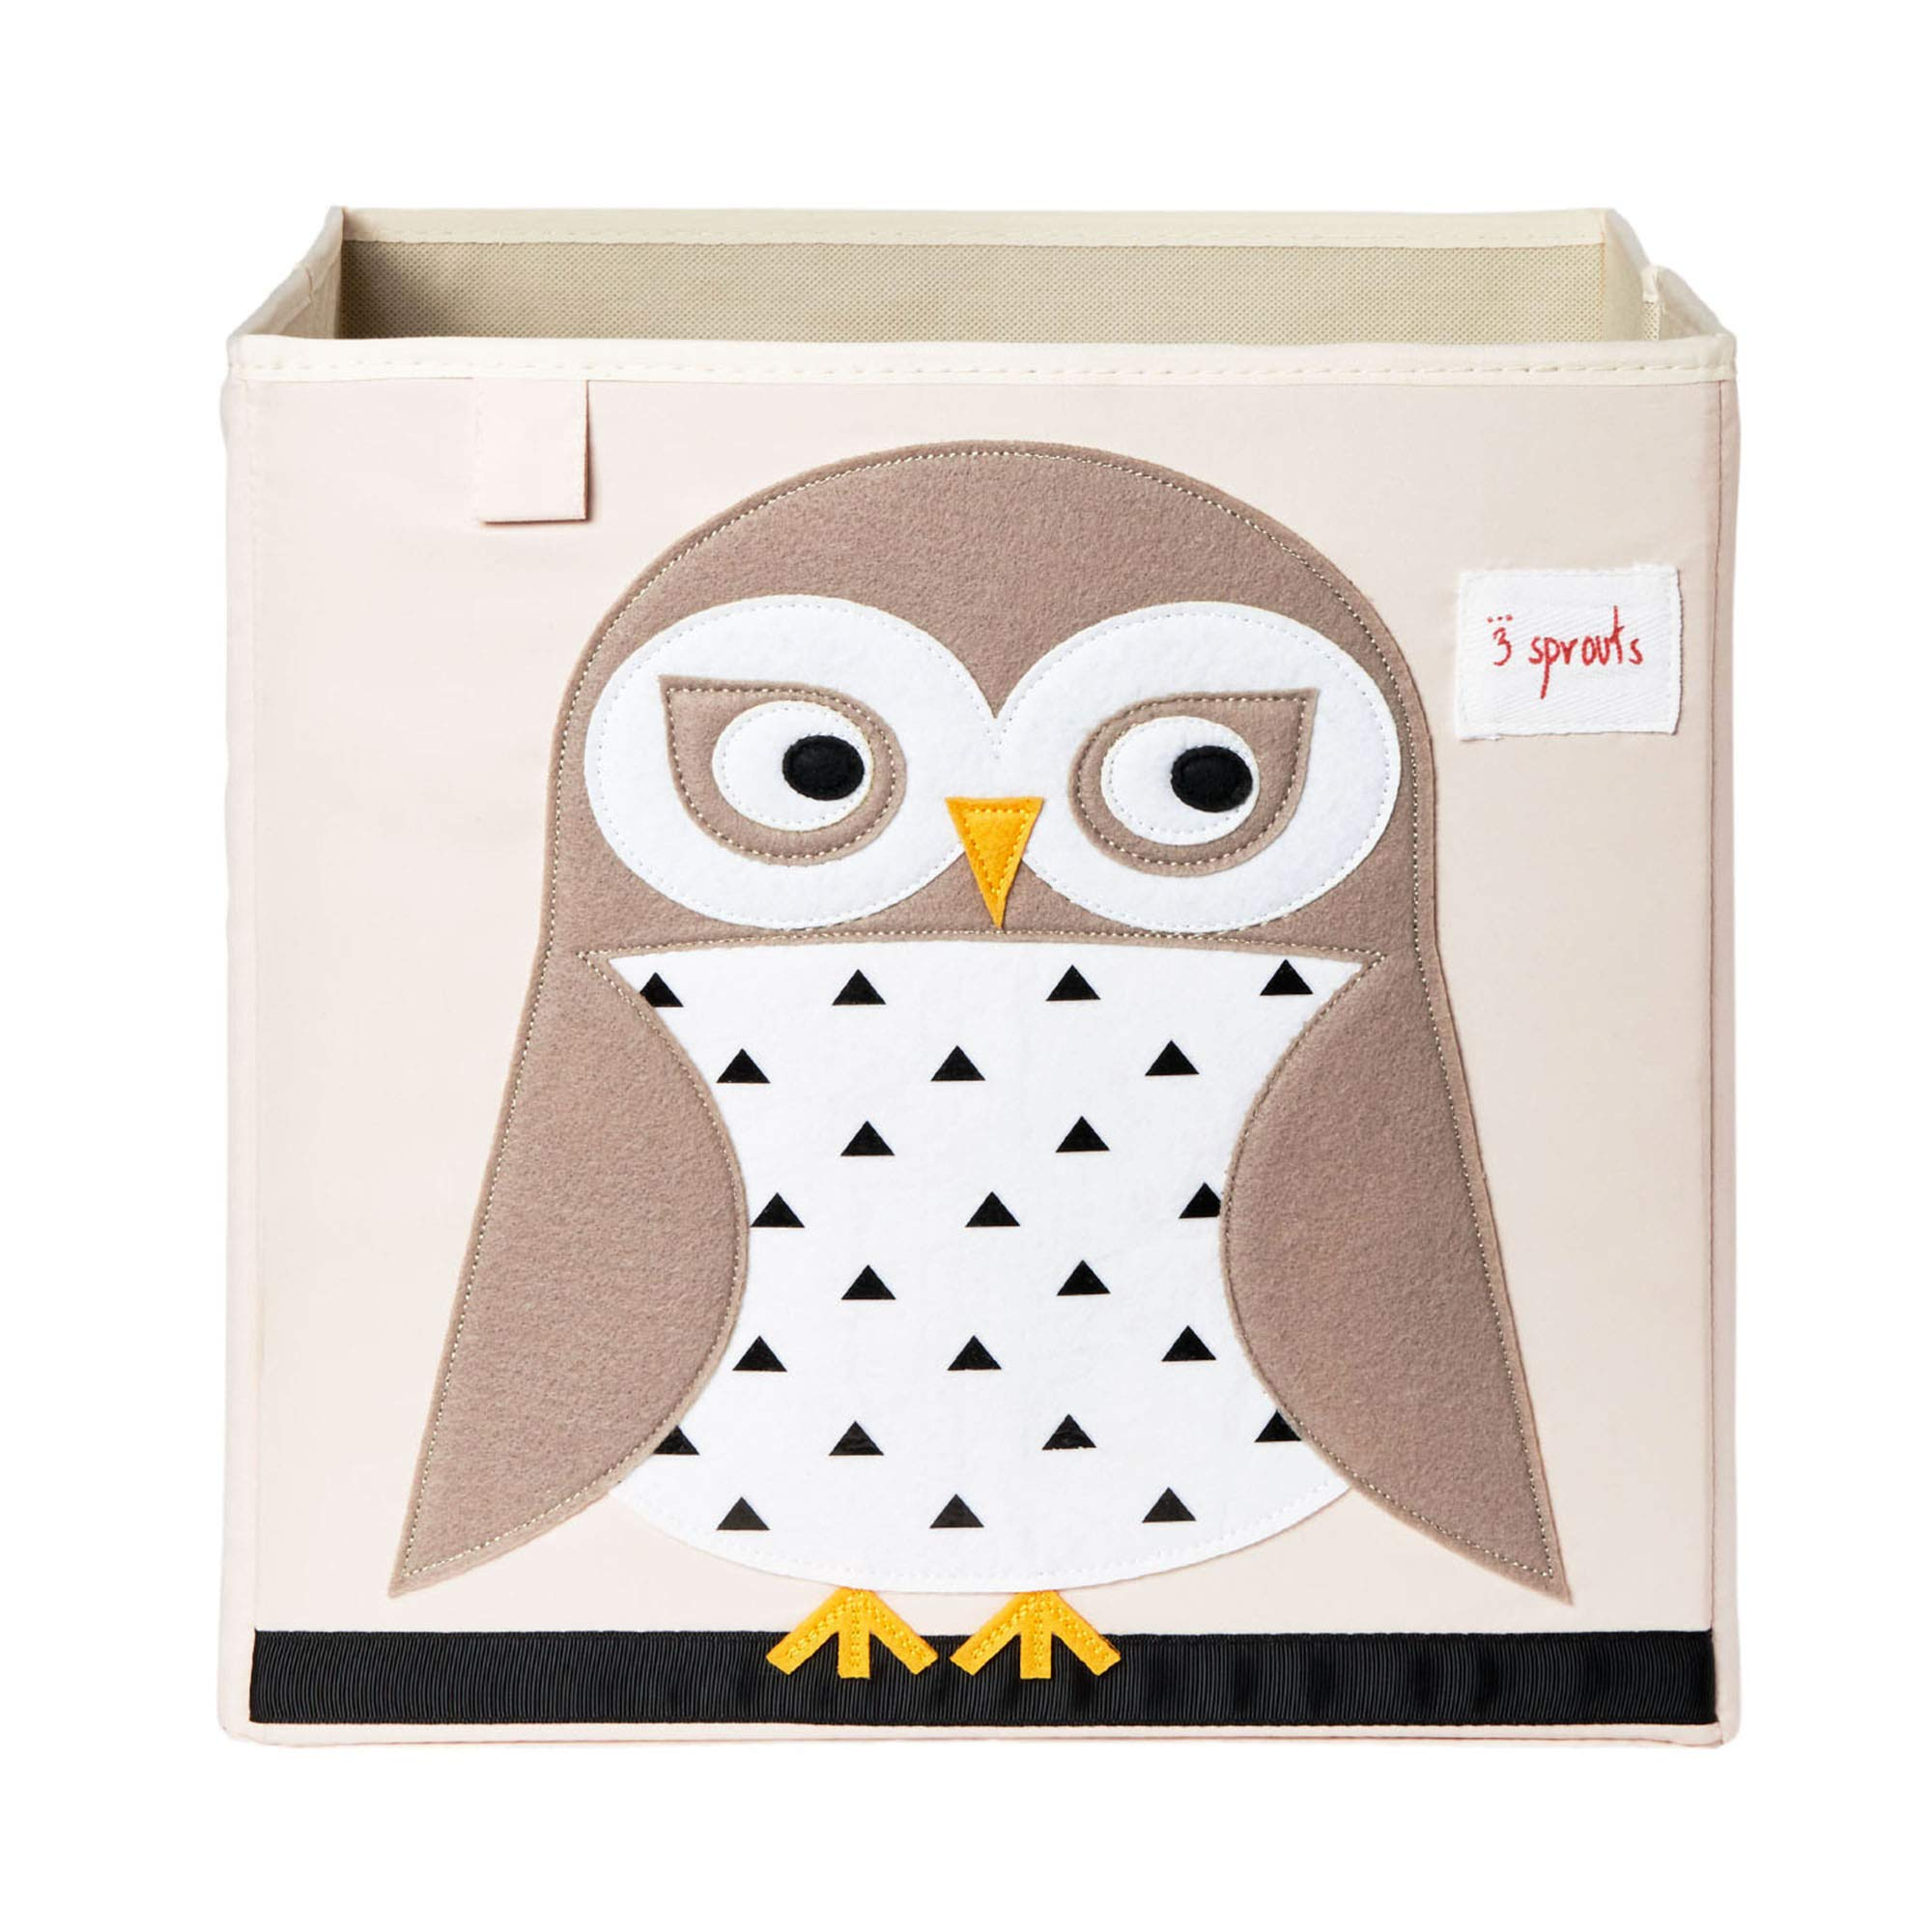 3 Sprouts Cube Storage Box - Organizer Container for Kids & Toddlers, Owl